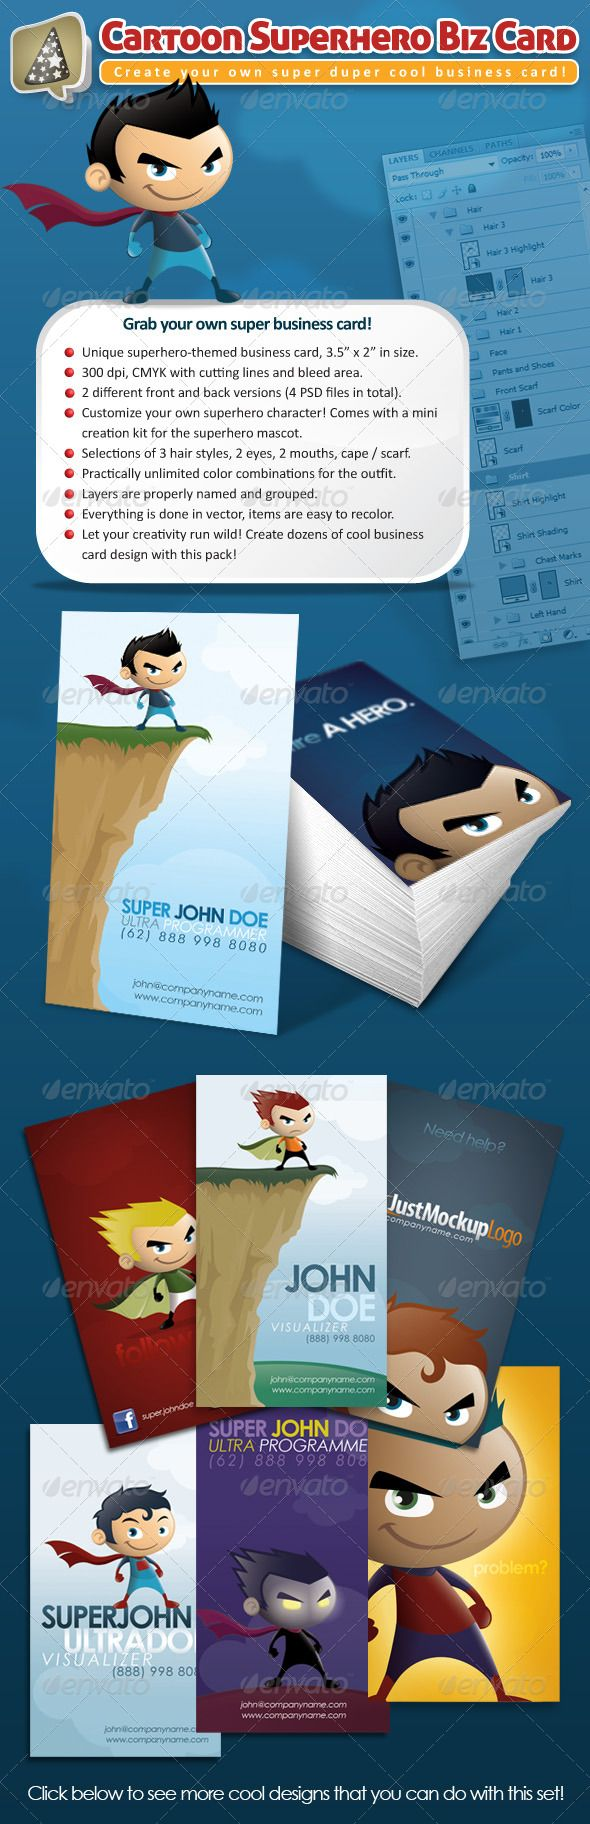 Cartoon Superhero #Business Card Maker - Creative Business Cards Download Here:    https://graphicriver.net/item/cartoon-superhero-business-card-maker/232170?ref=suz_562geid